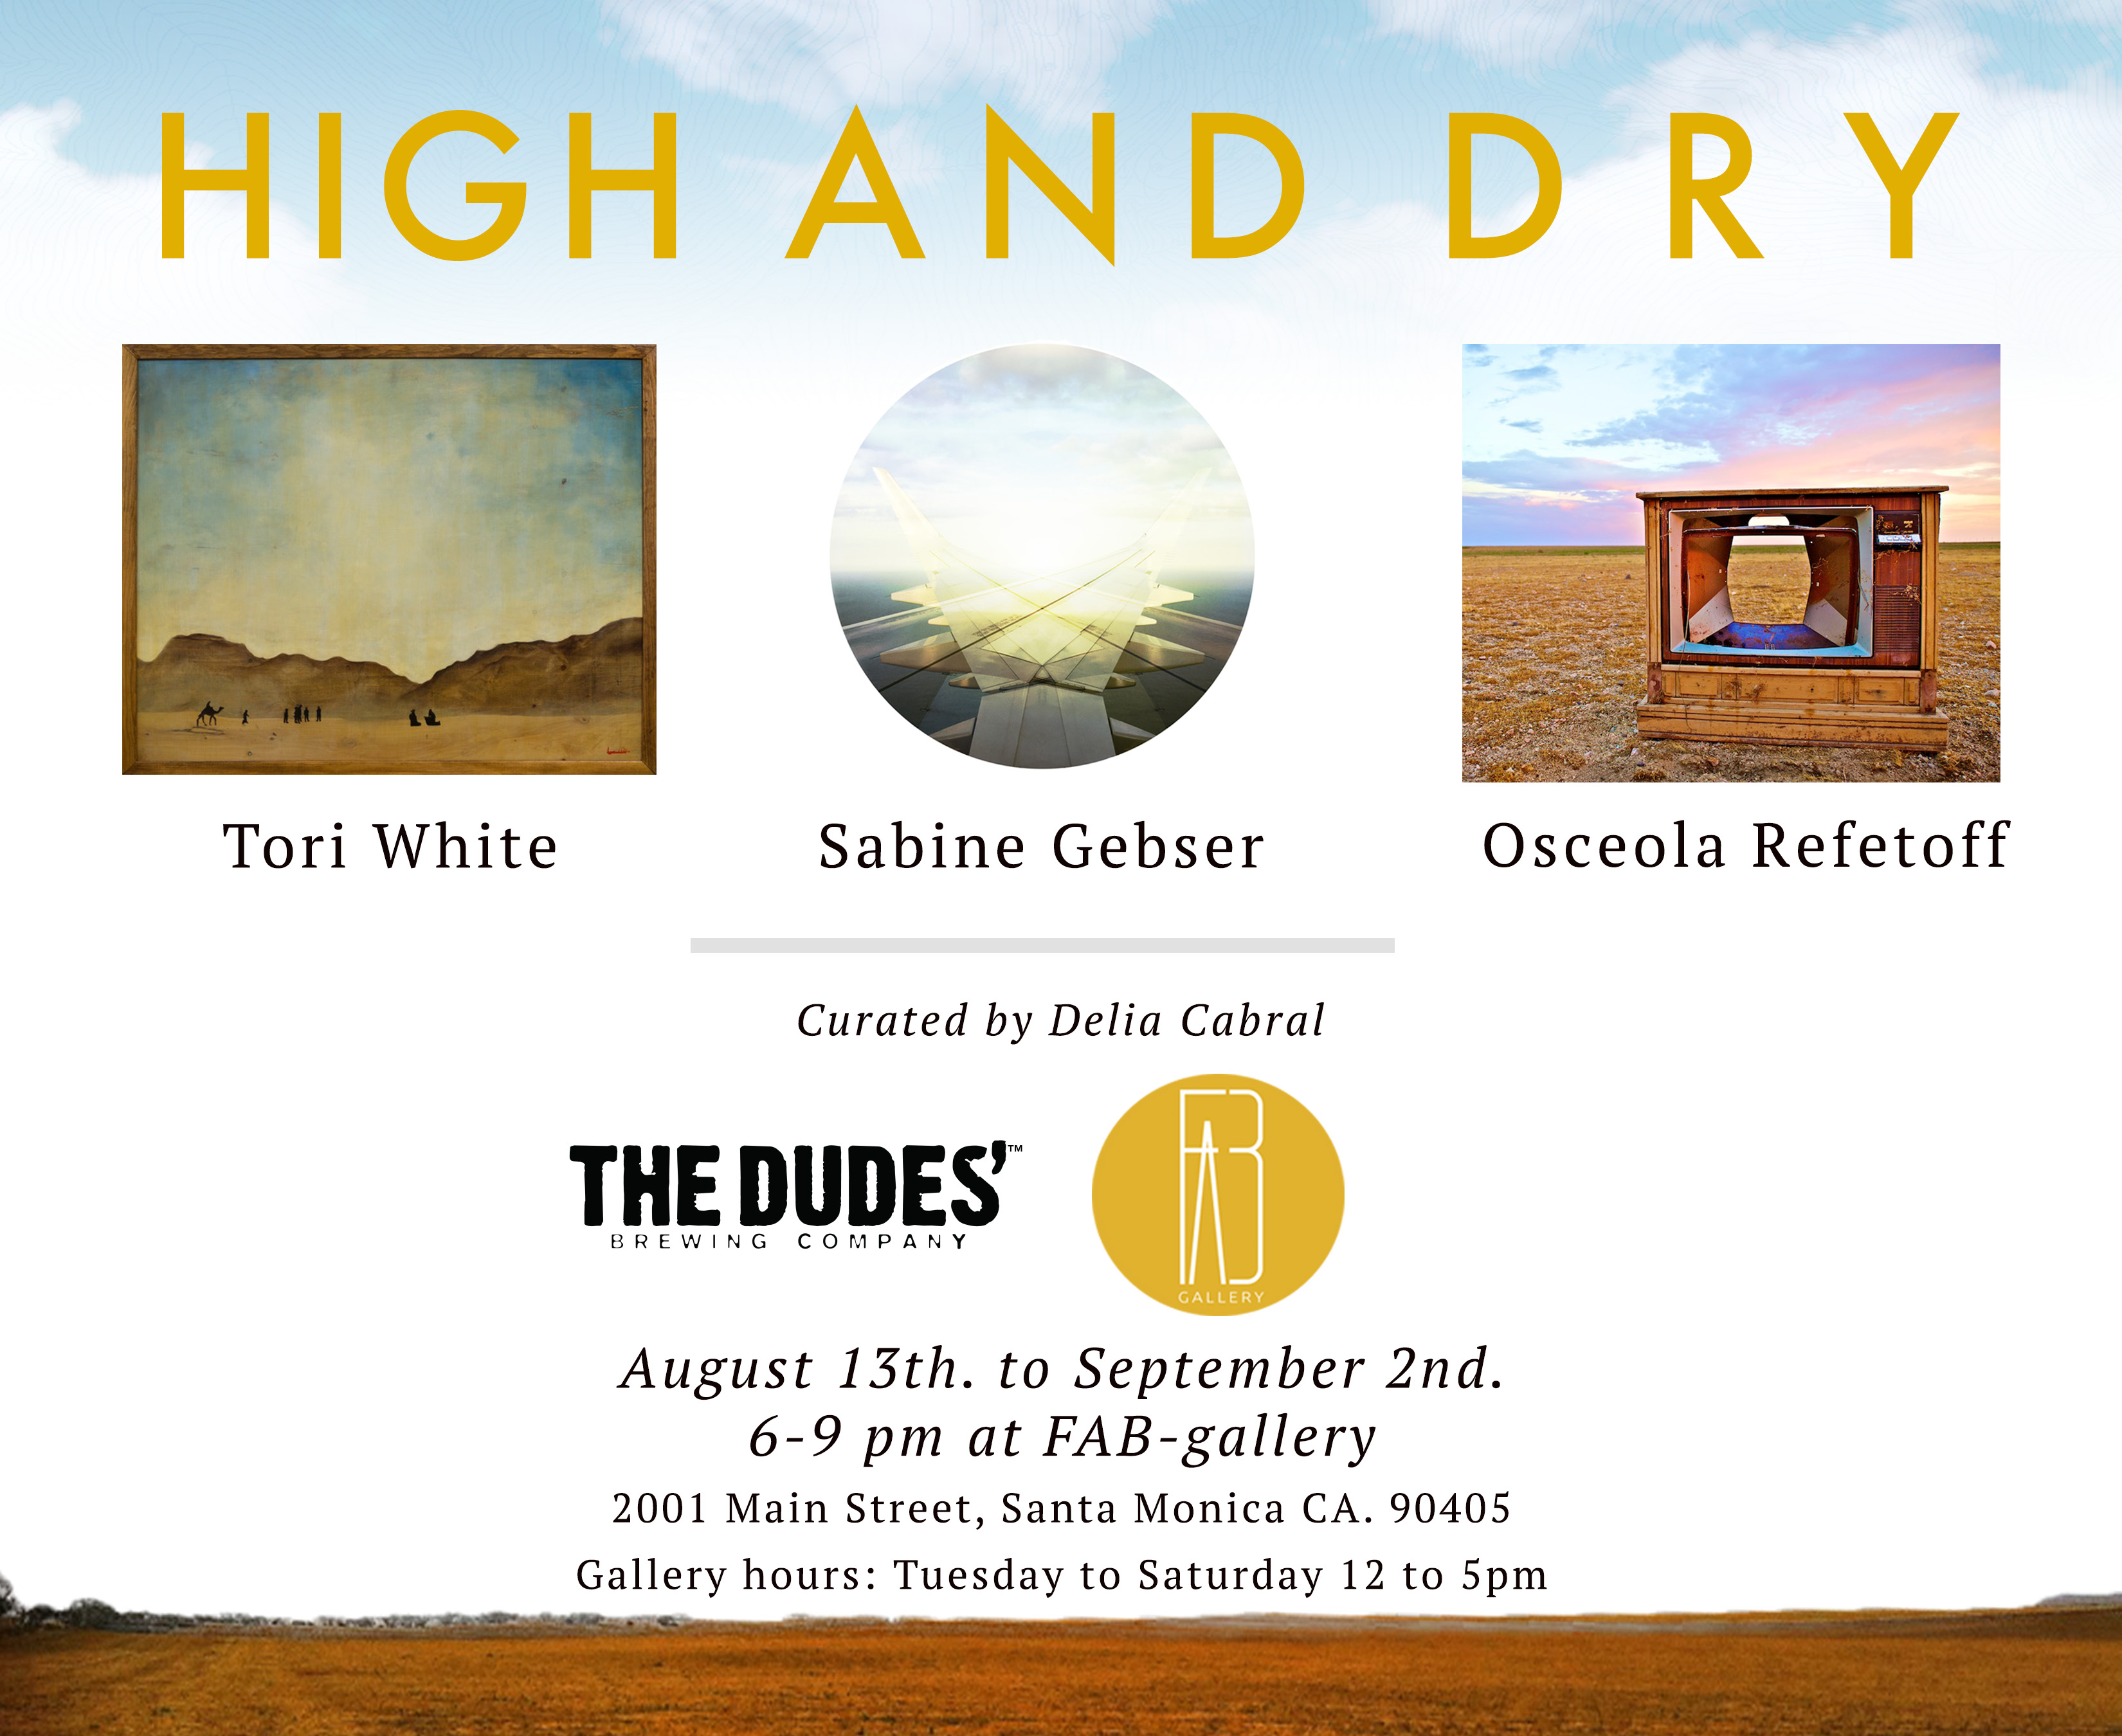 FAB-gallery - High and Dry